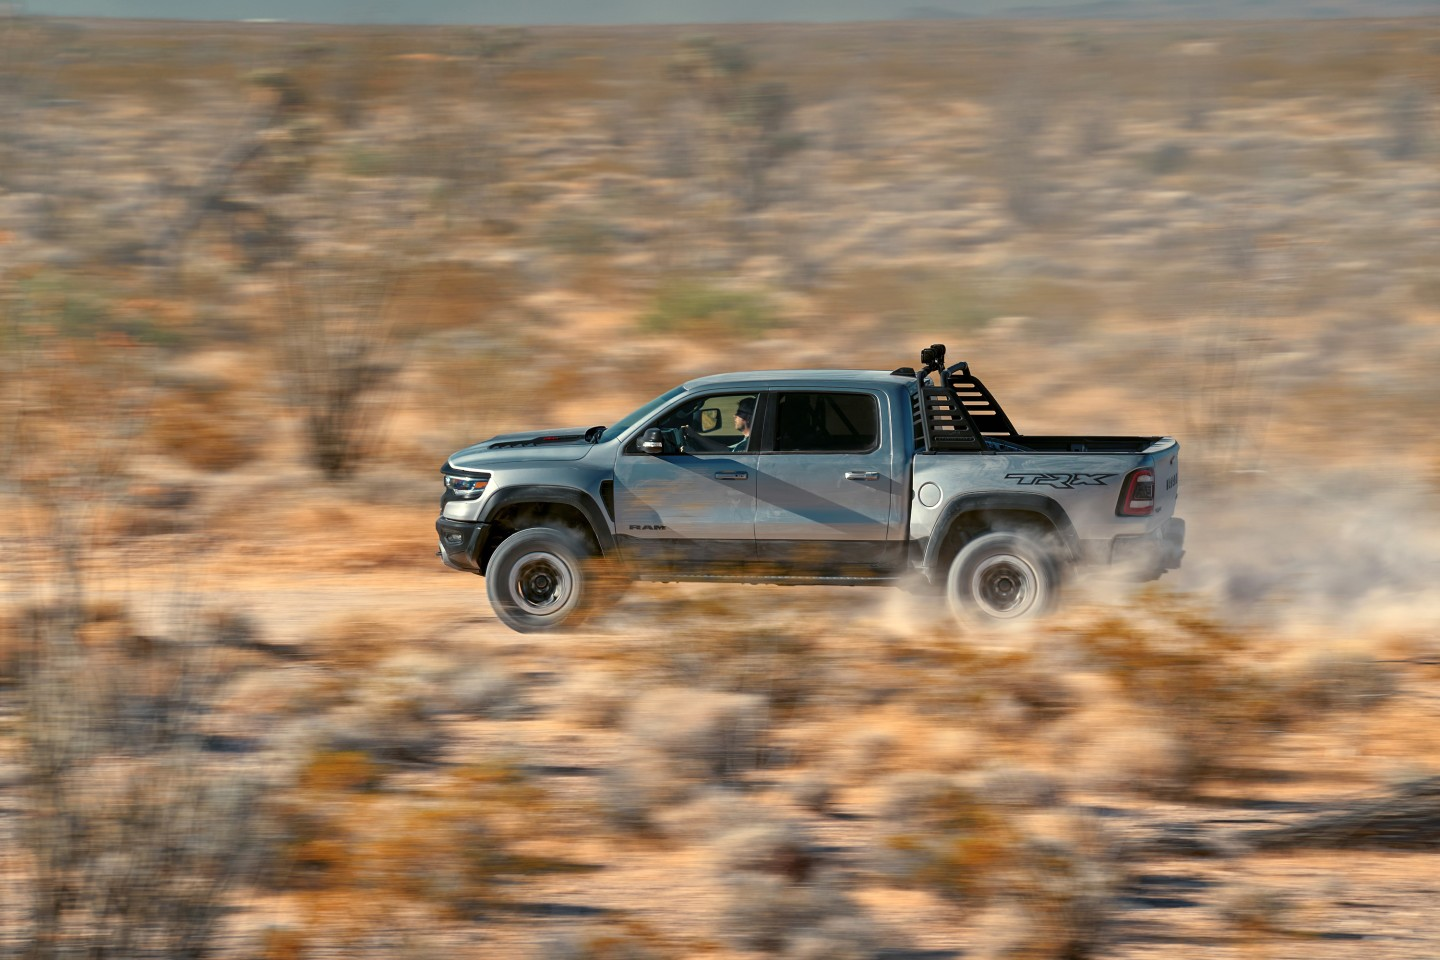 The 2021 Ram 1500 TRX has been designed to sprint over 100 mph through the desert